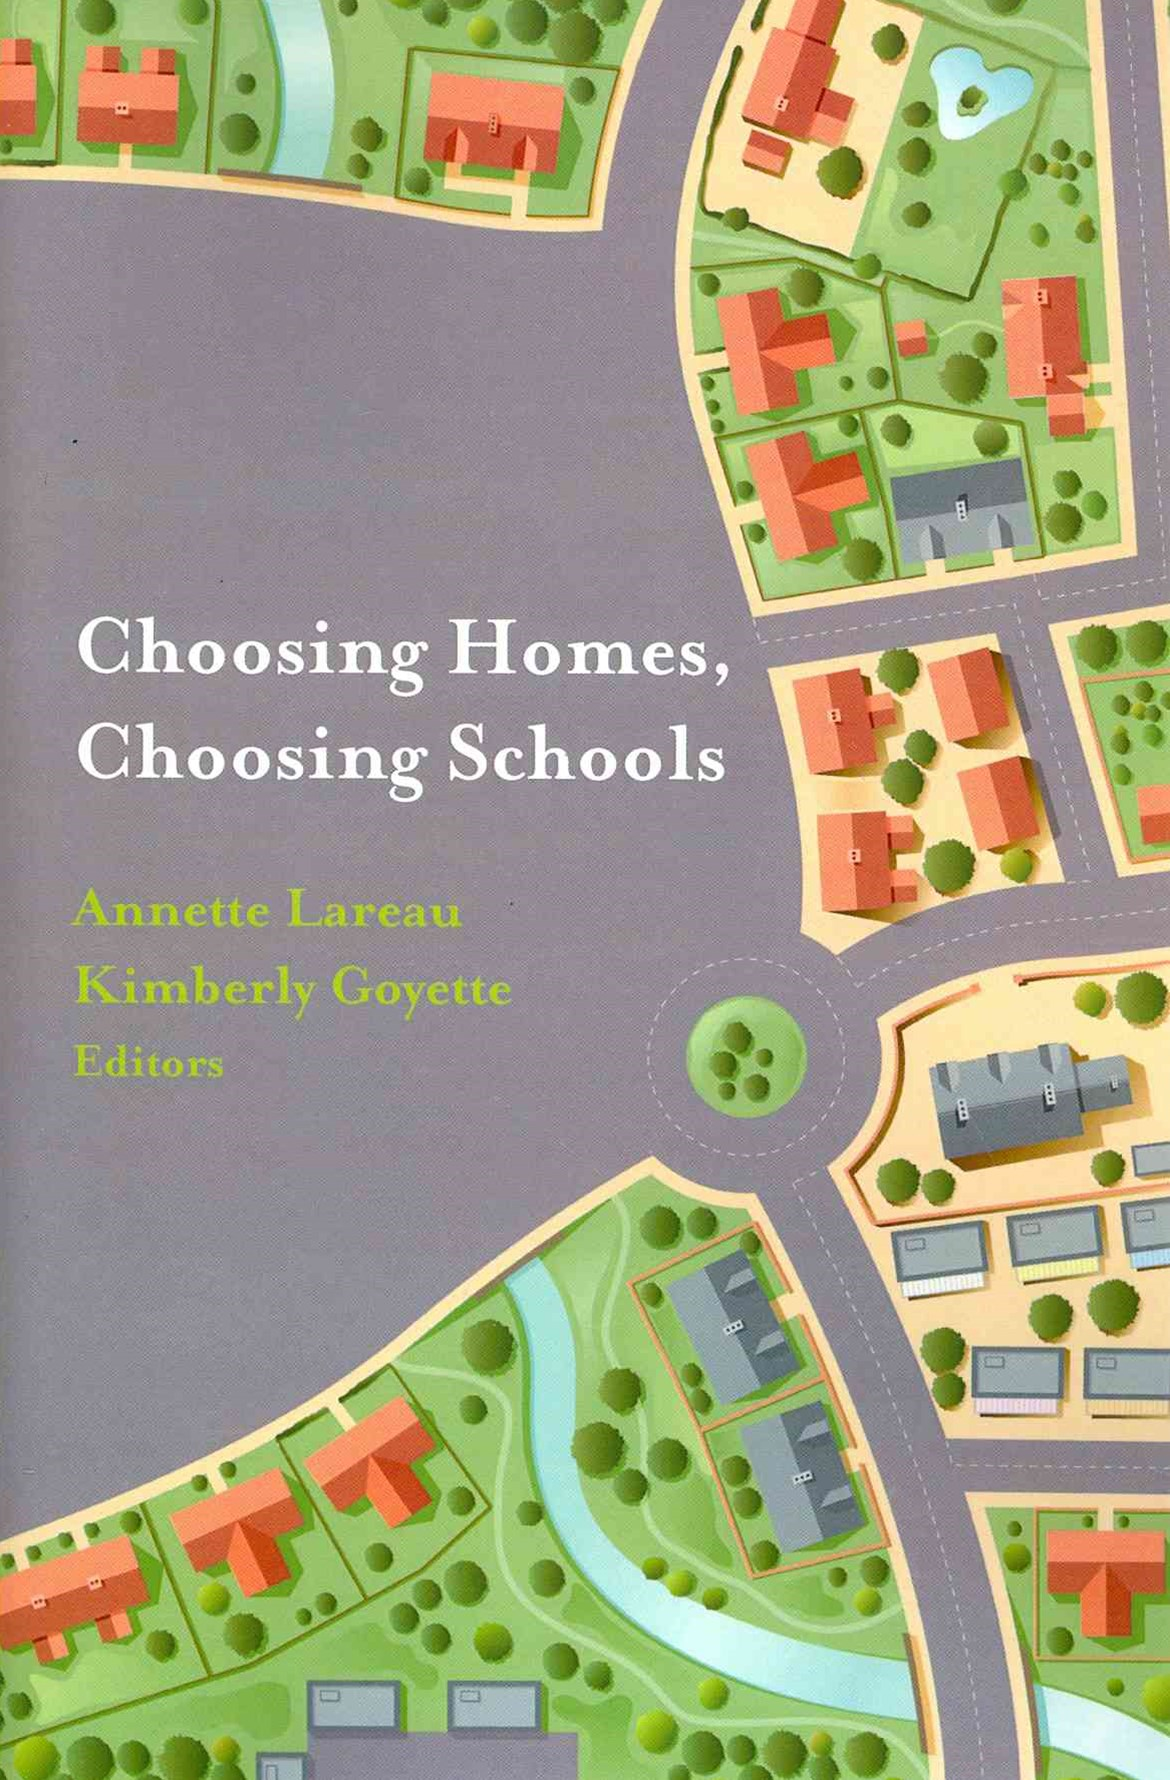 Changing Homes, Changing Schools